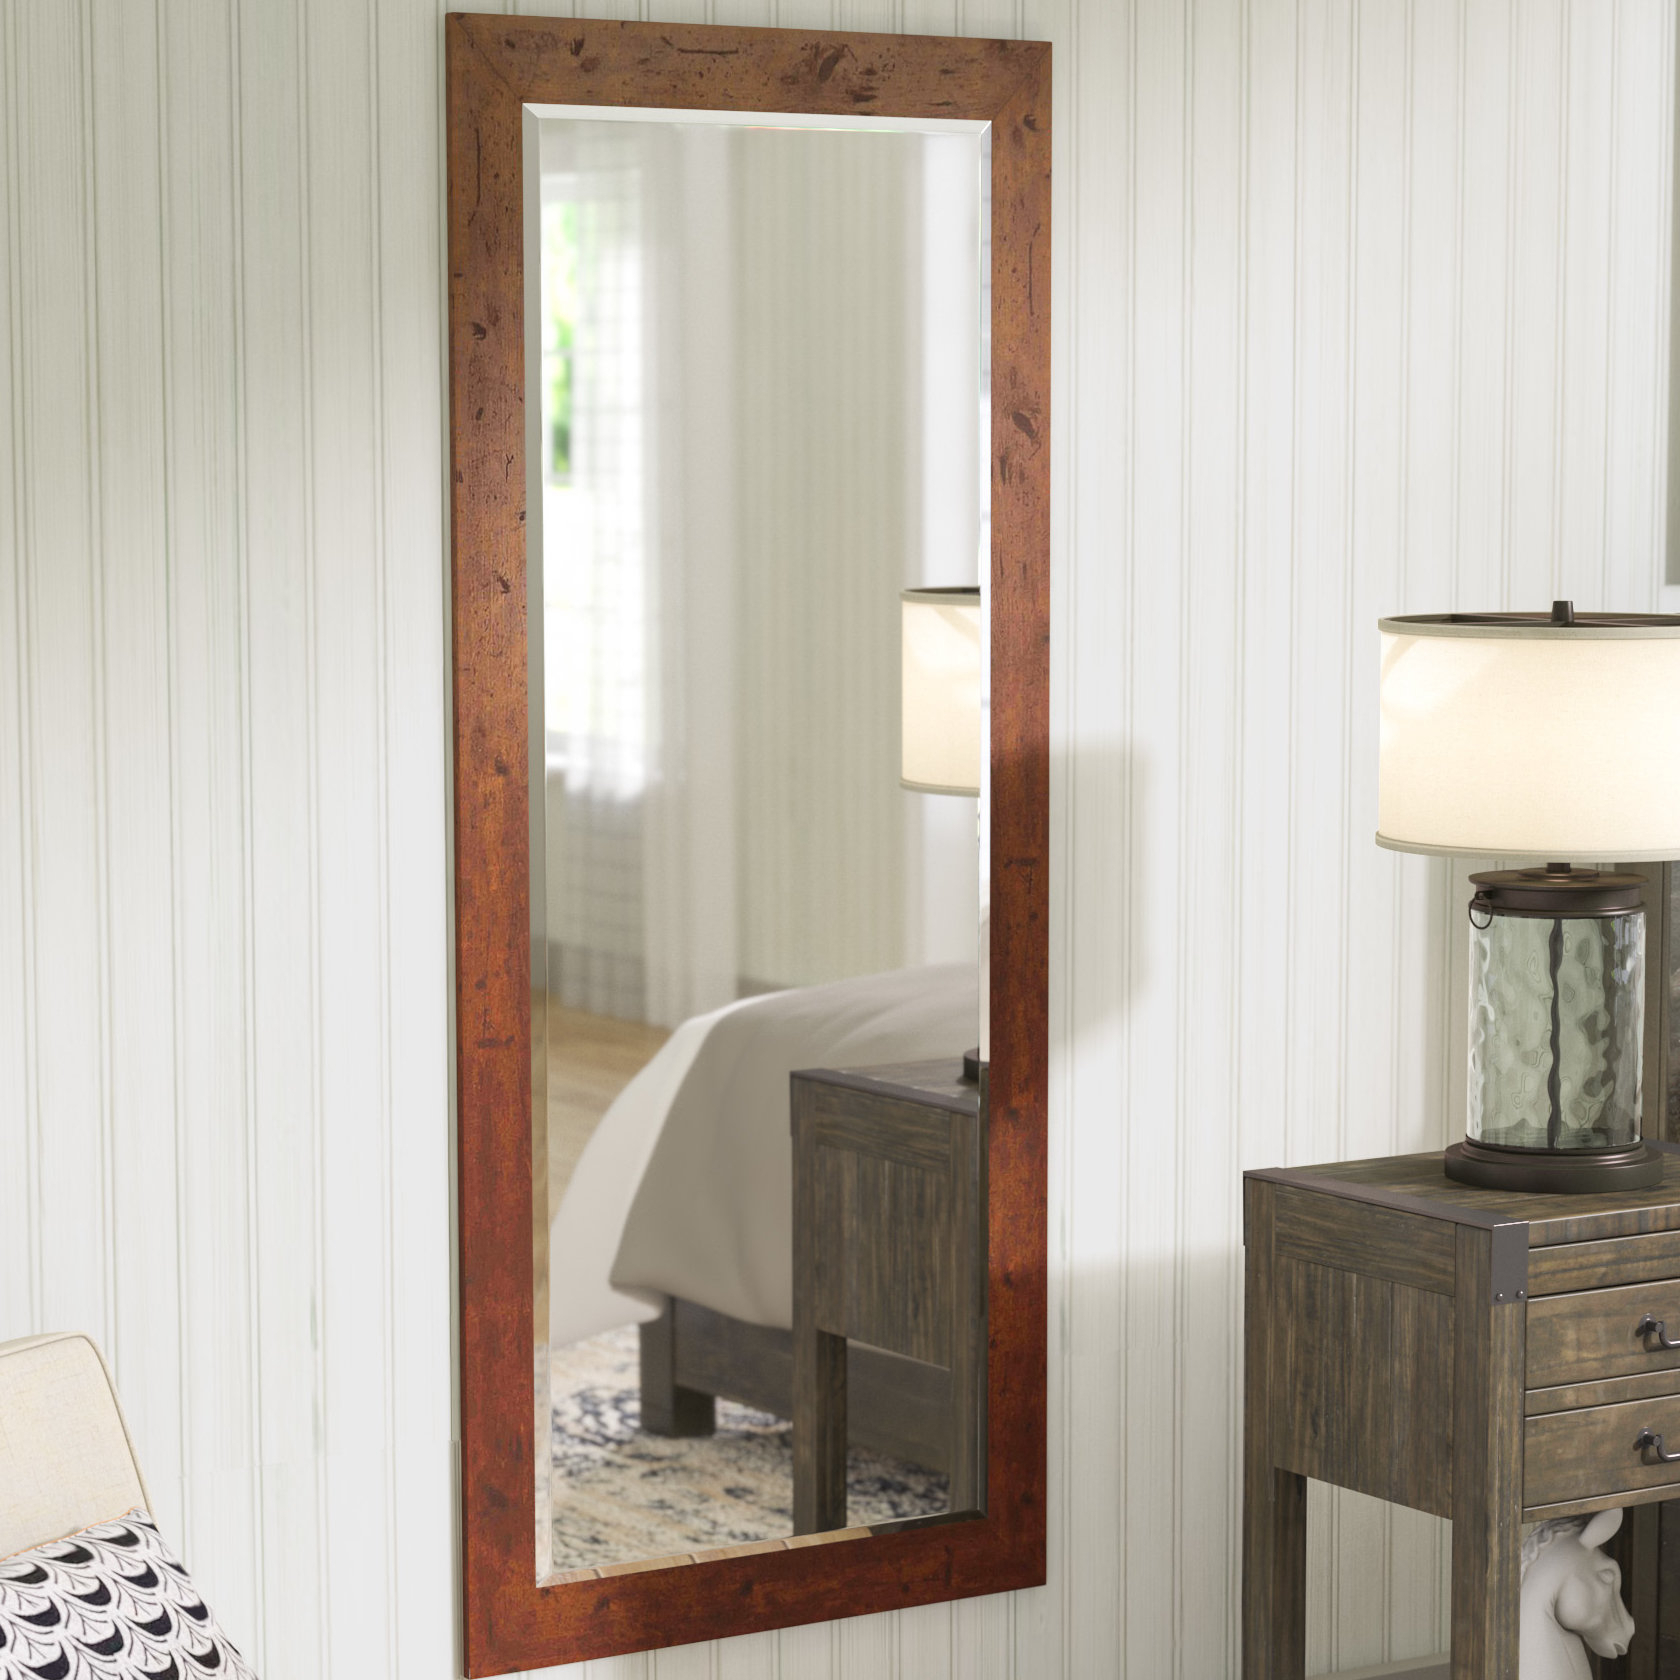 Farmhouse & Rustic Laurel Foundry Modern Farmhouse Wall Pertaining To Peetz Modern Rustic Accent Mirrors (Image 10 of 30)